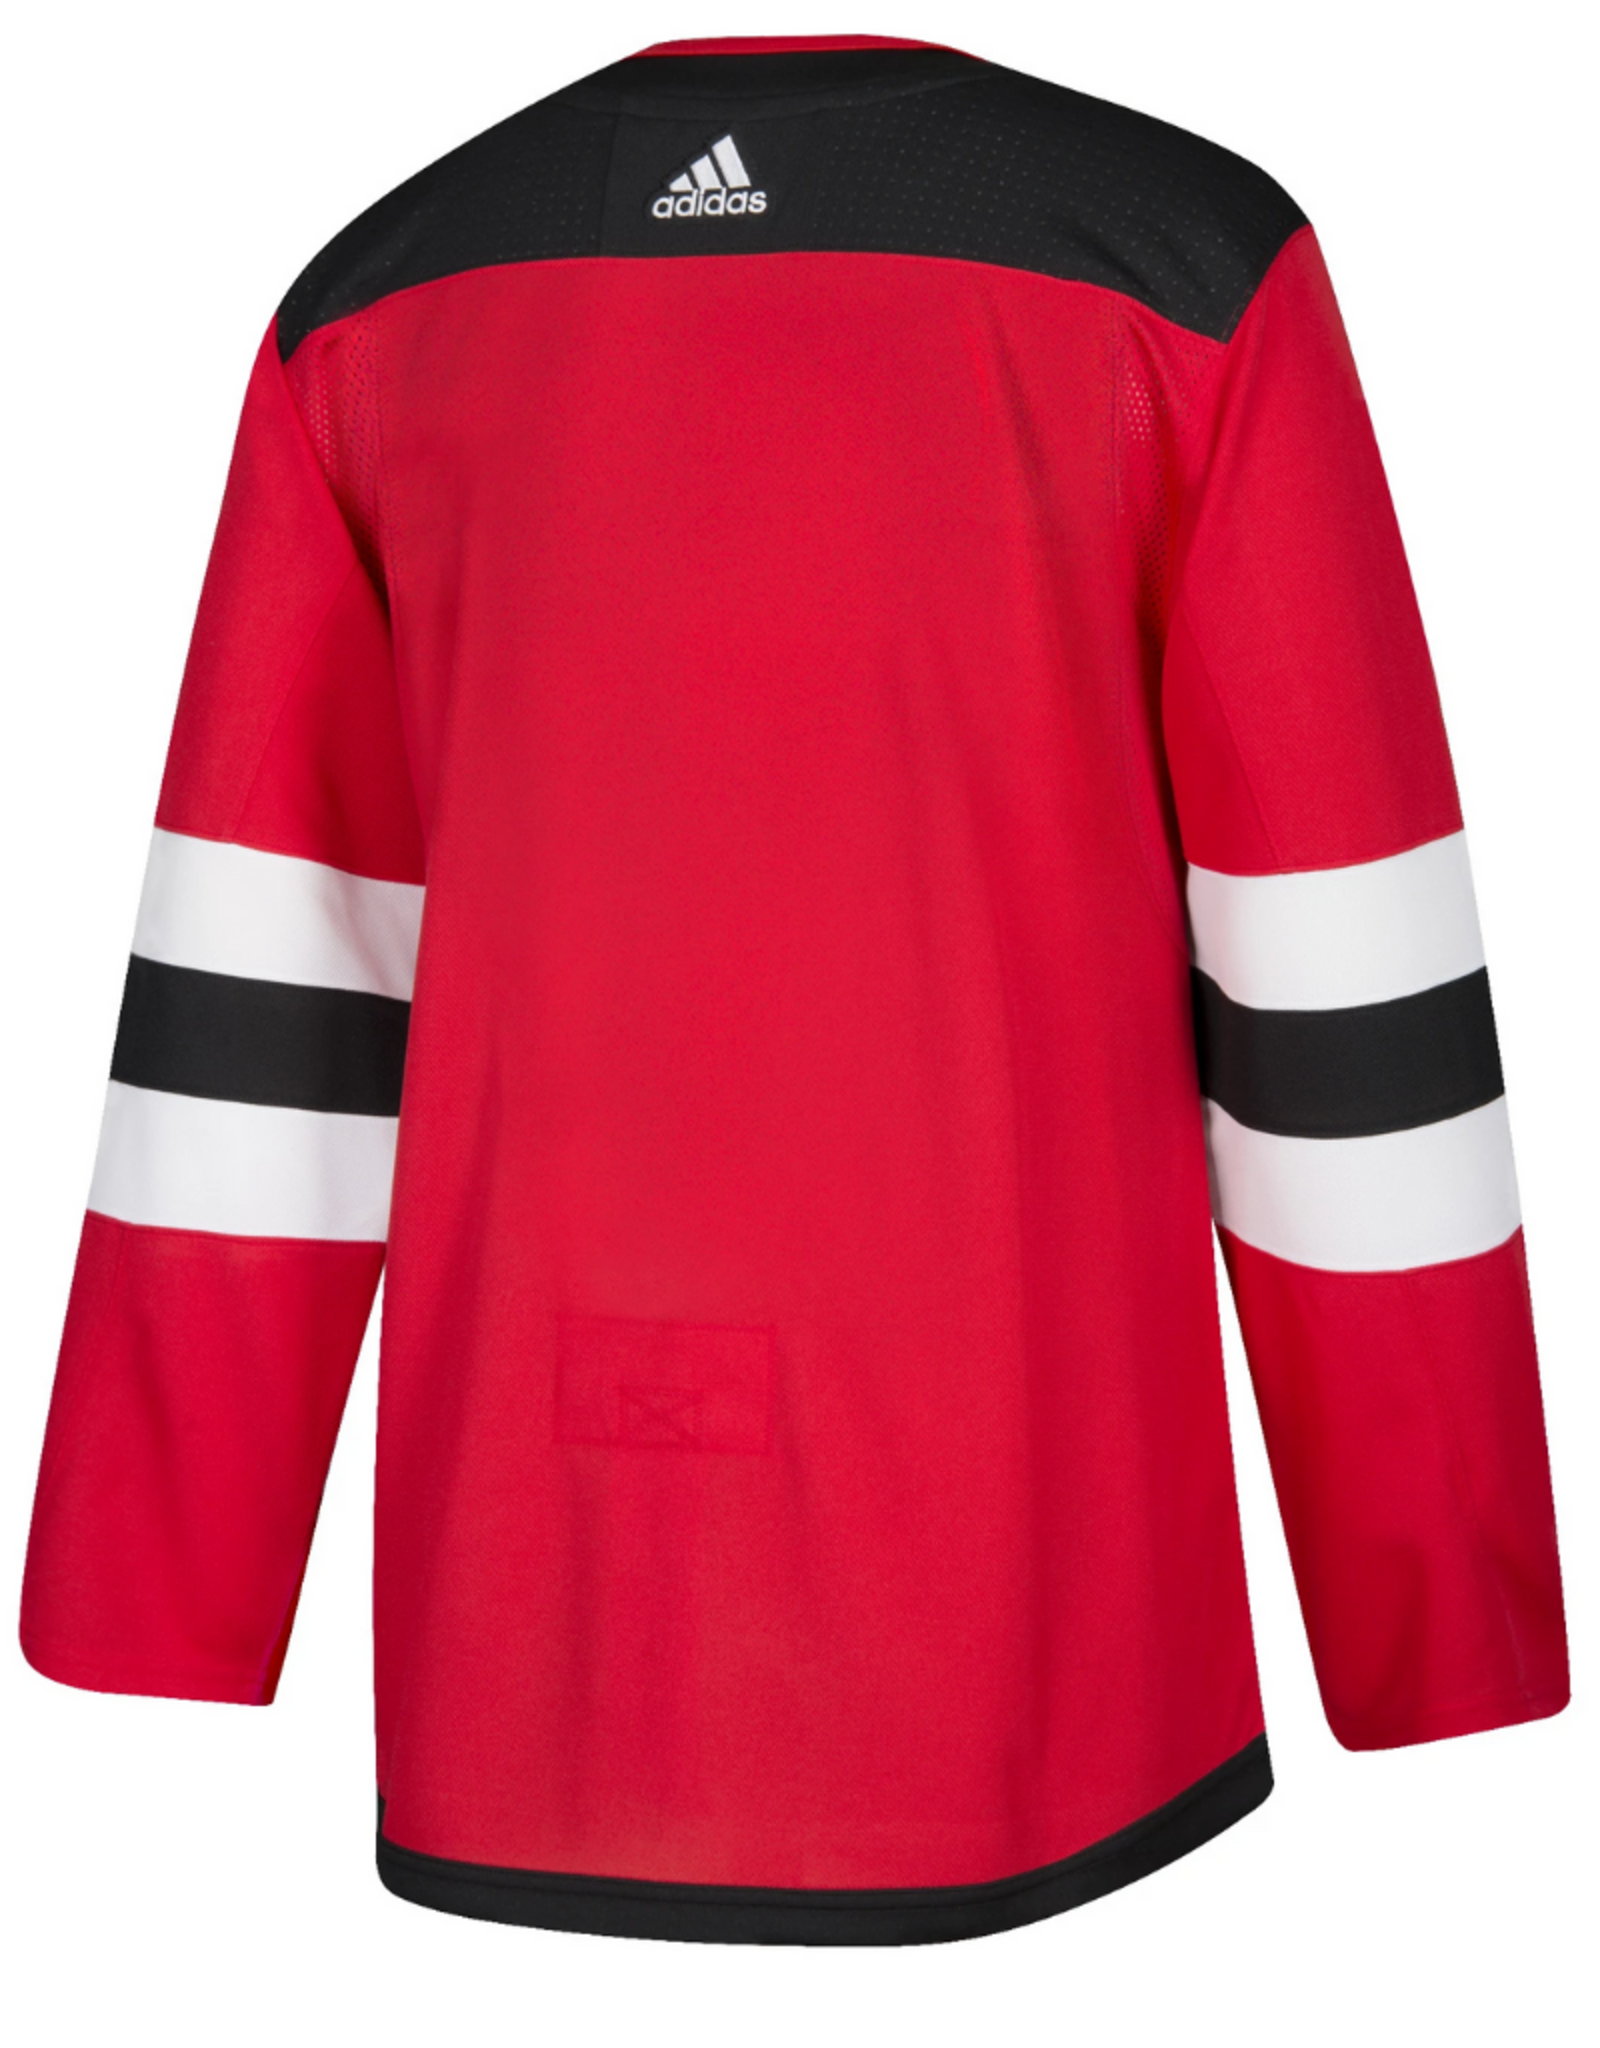 Adidas Adidas Adult Authentic New Jersey Devils Jersey Red